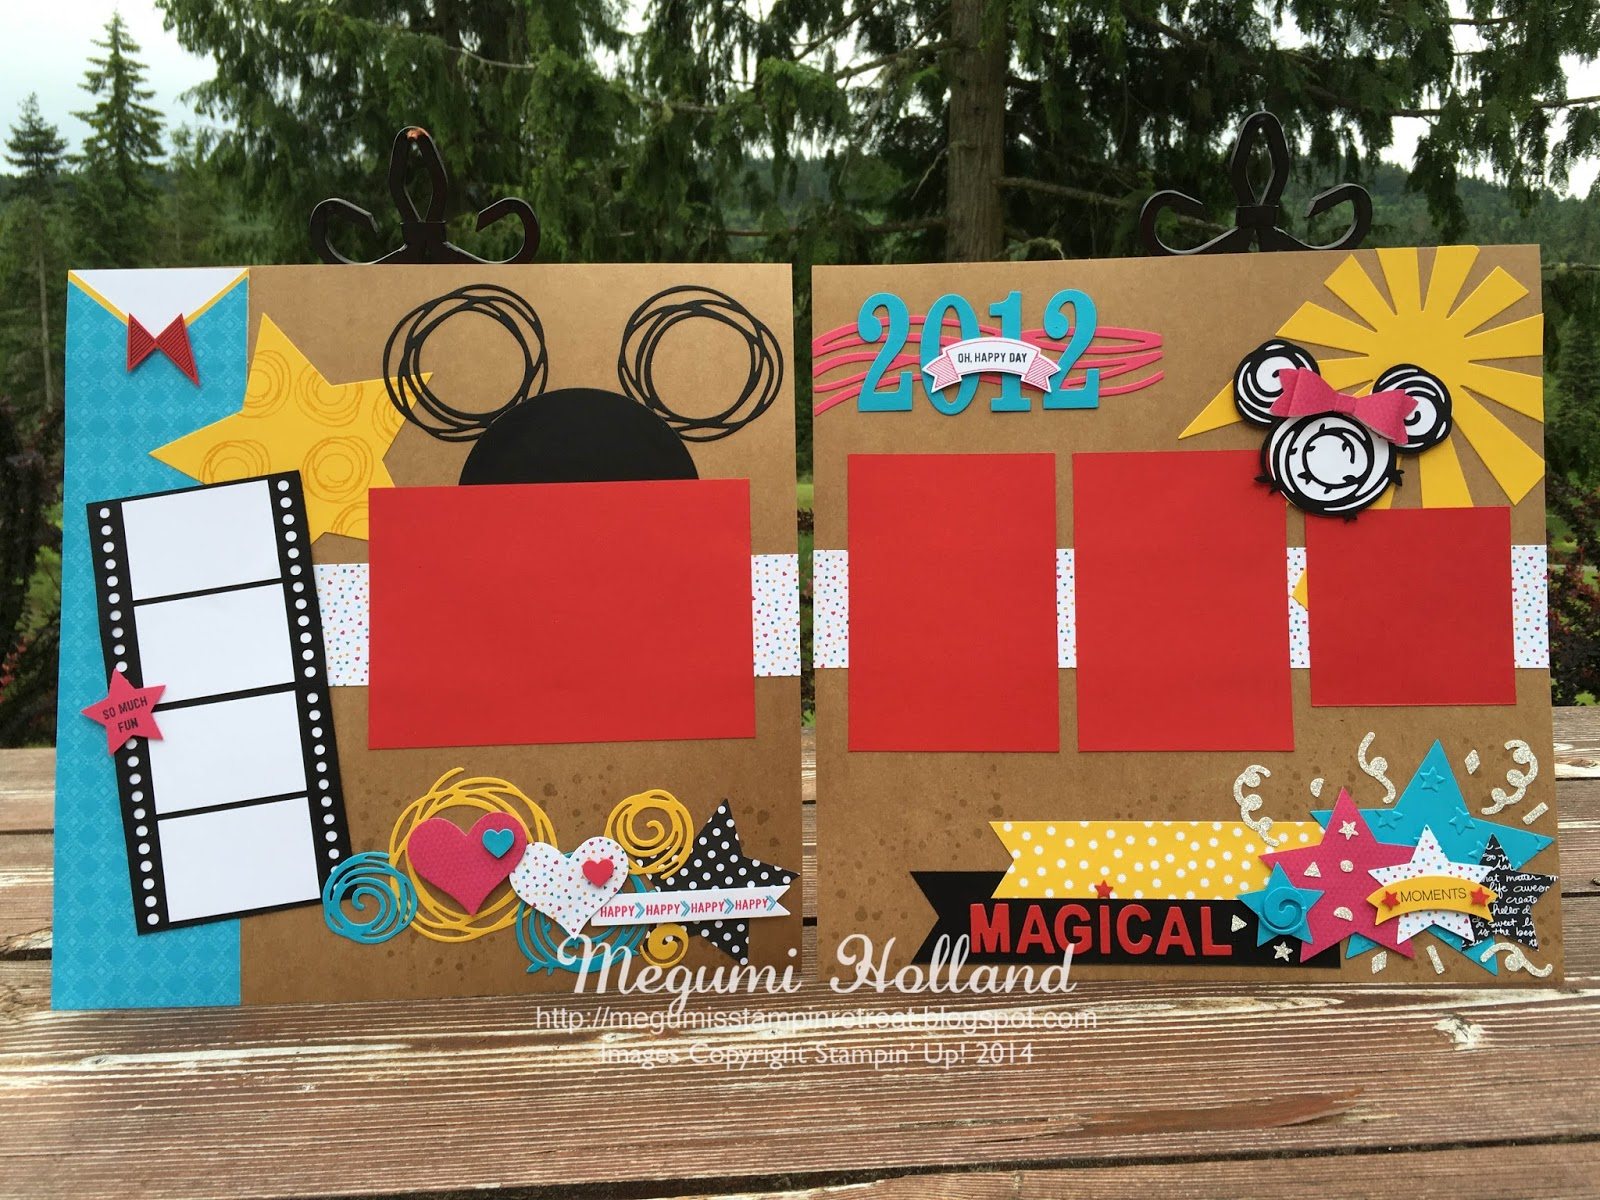 How to scrapbook disney - I Am Super Excited To Share These Adorable Scrapbook Pages We Made At My Scrapbooking Club This Month Featuring The Swirly Bird Stamp Set And The